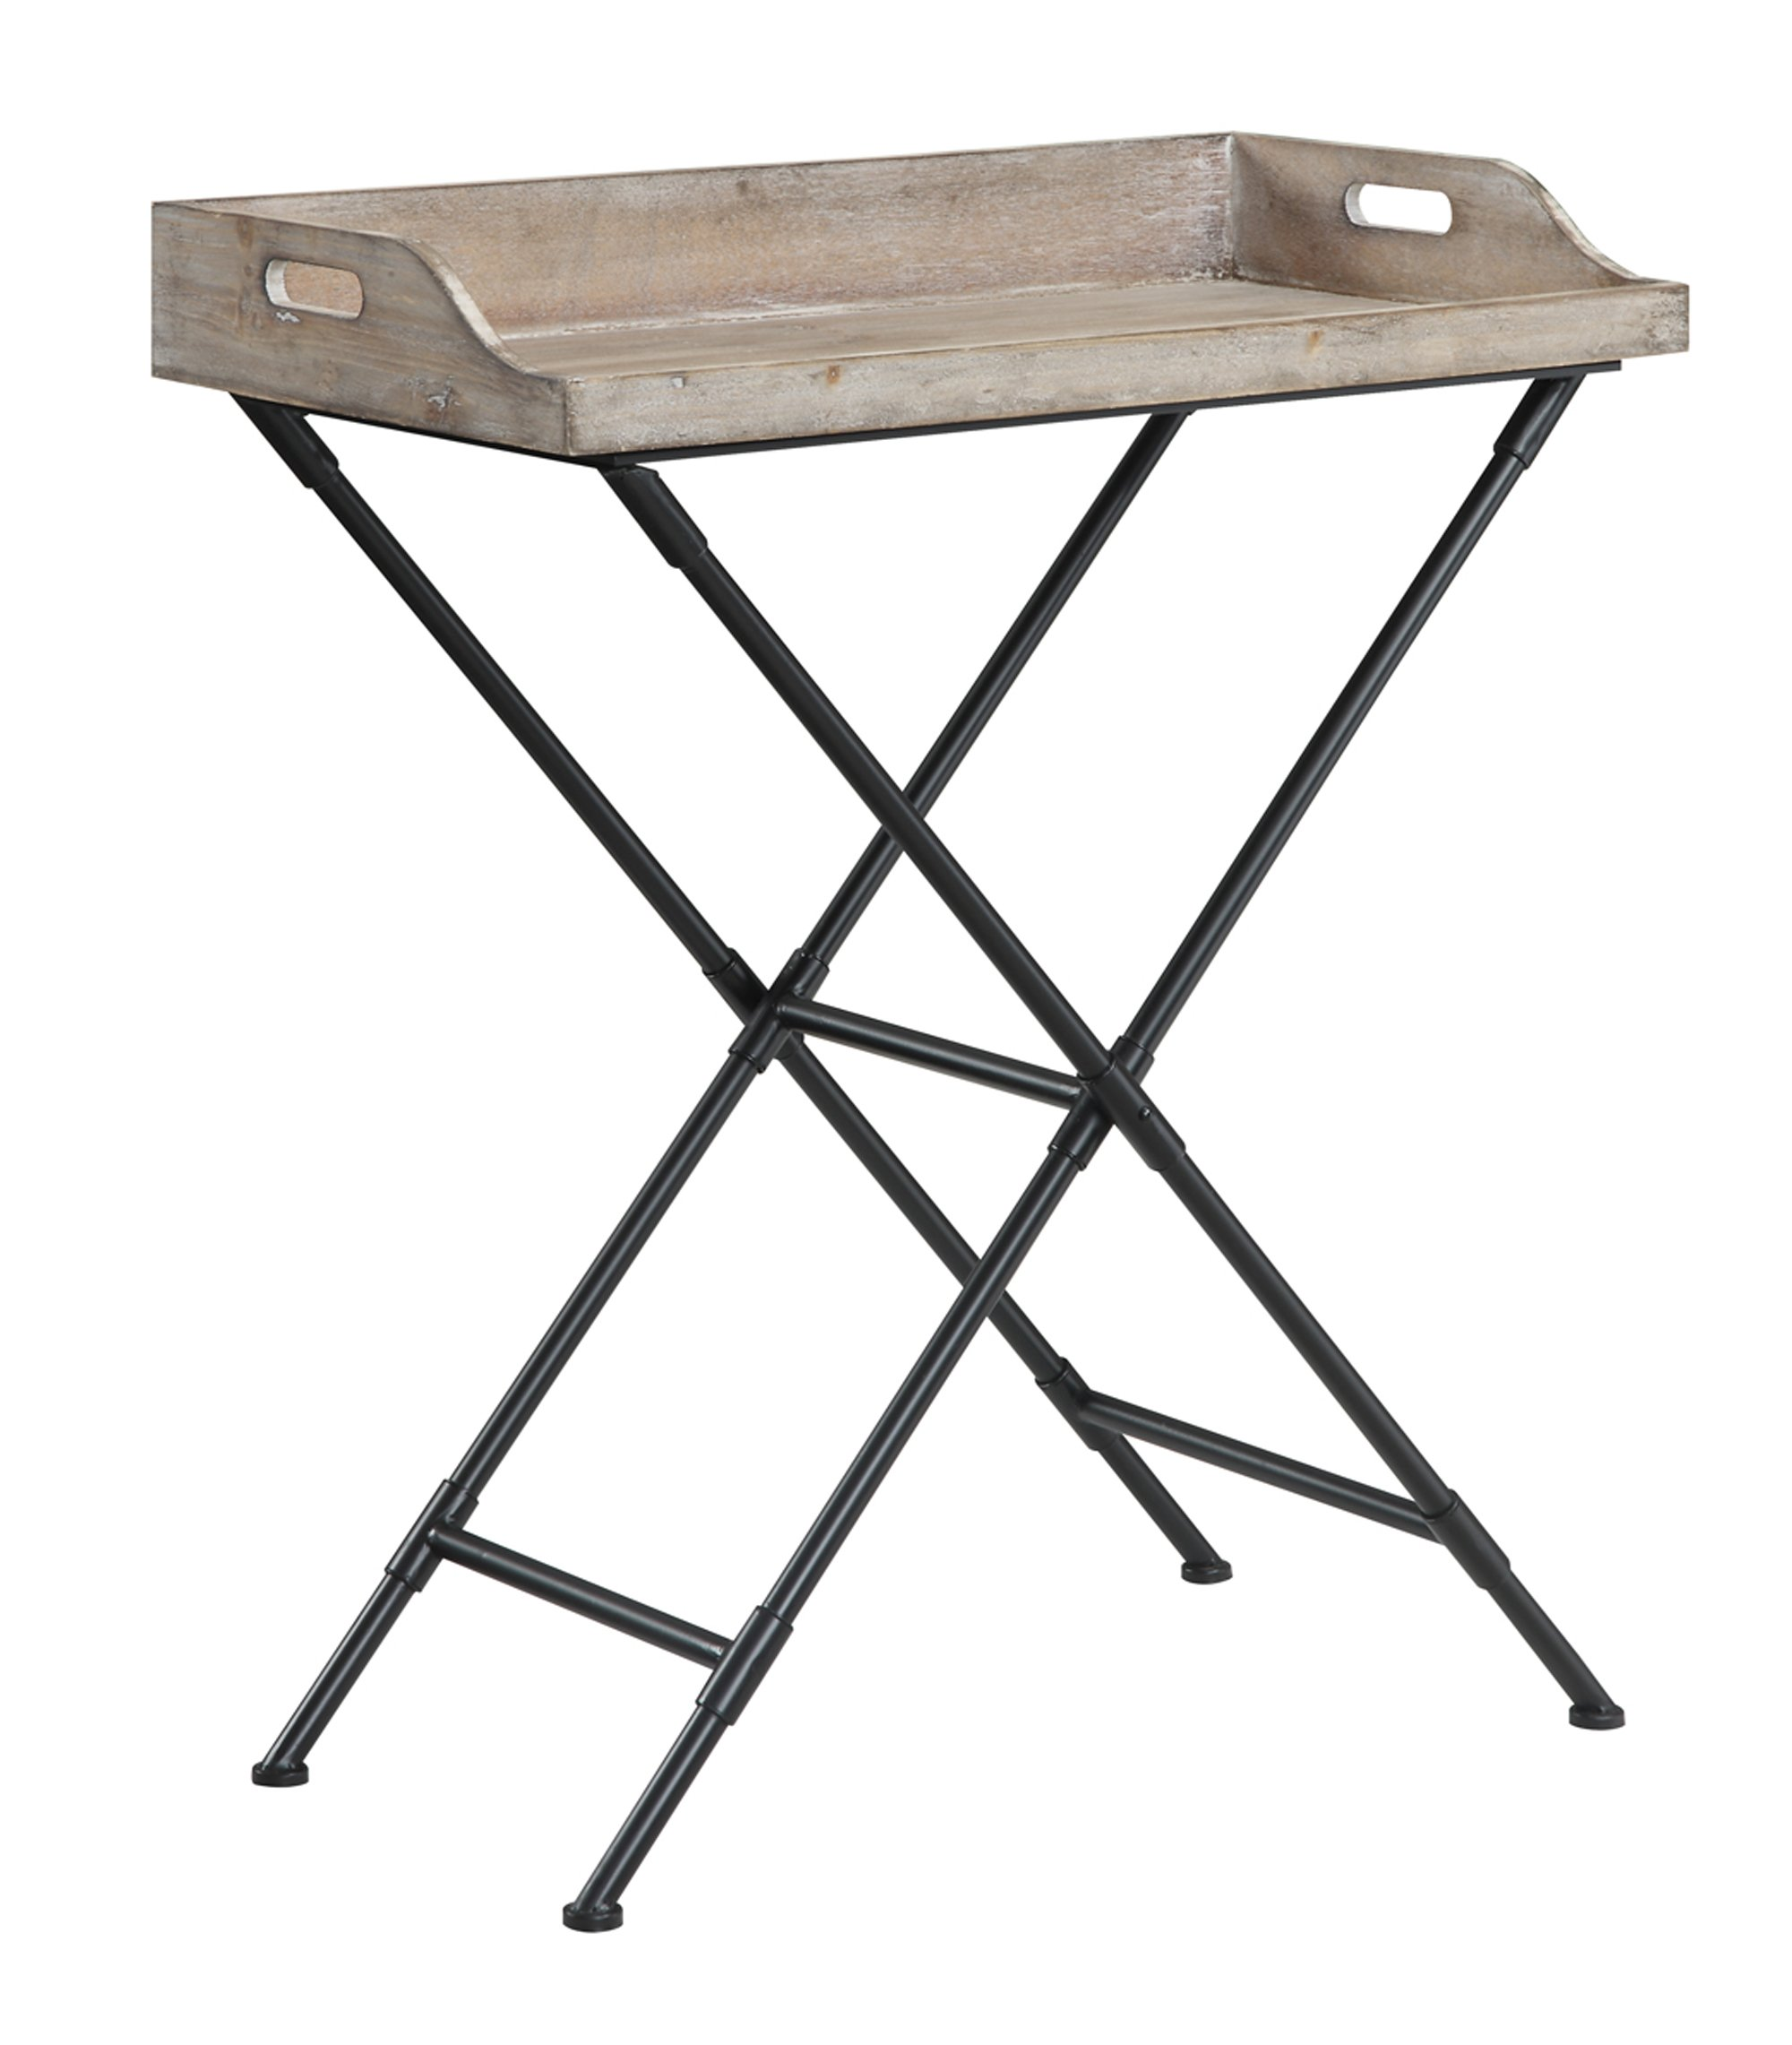 Convenience Concepts Wyoming Folding Serving Bar Table, Antique Wooden Tray